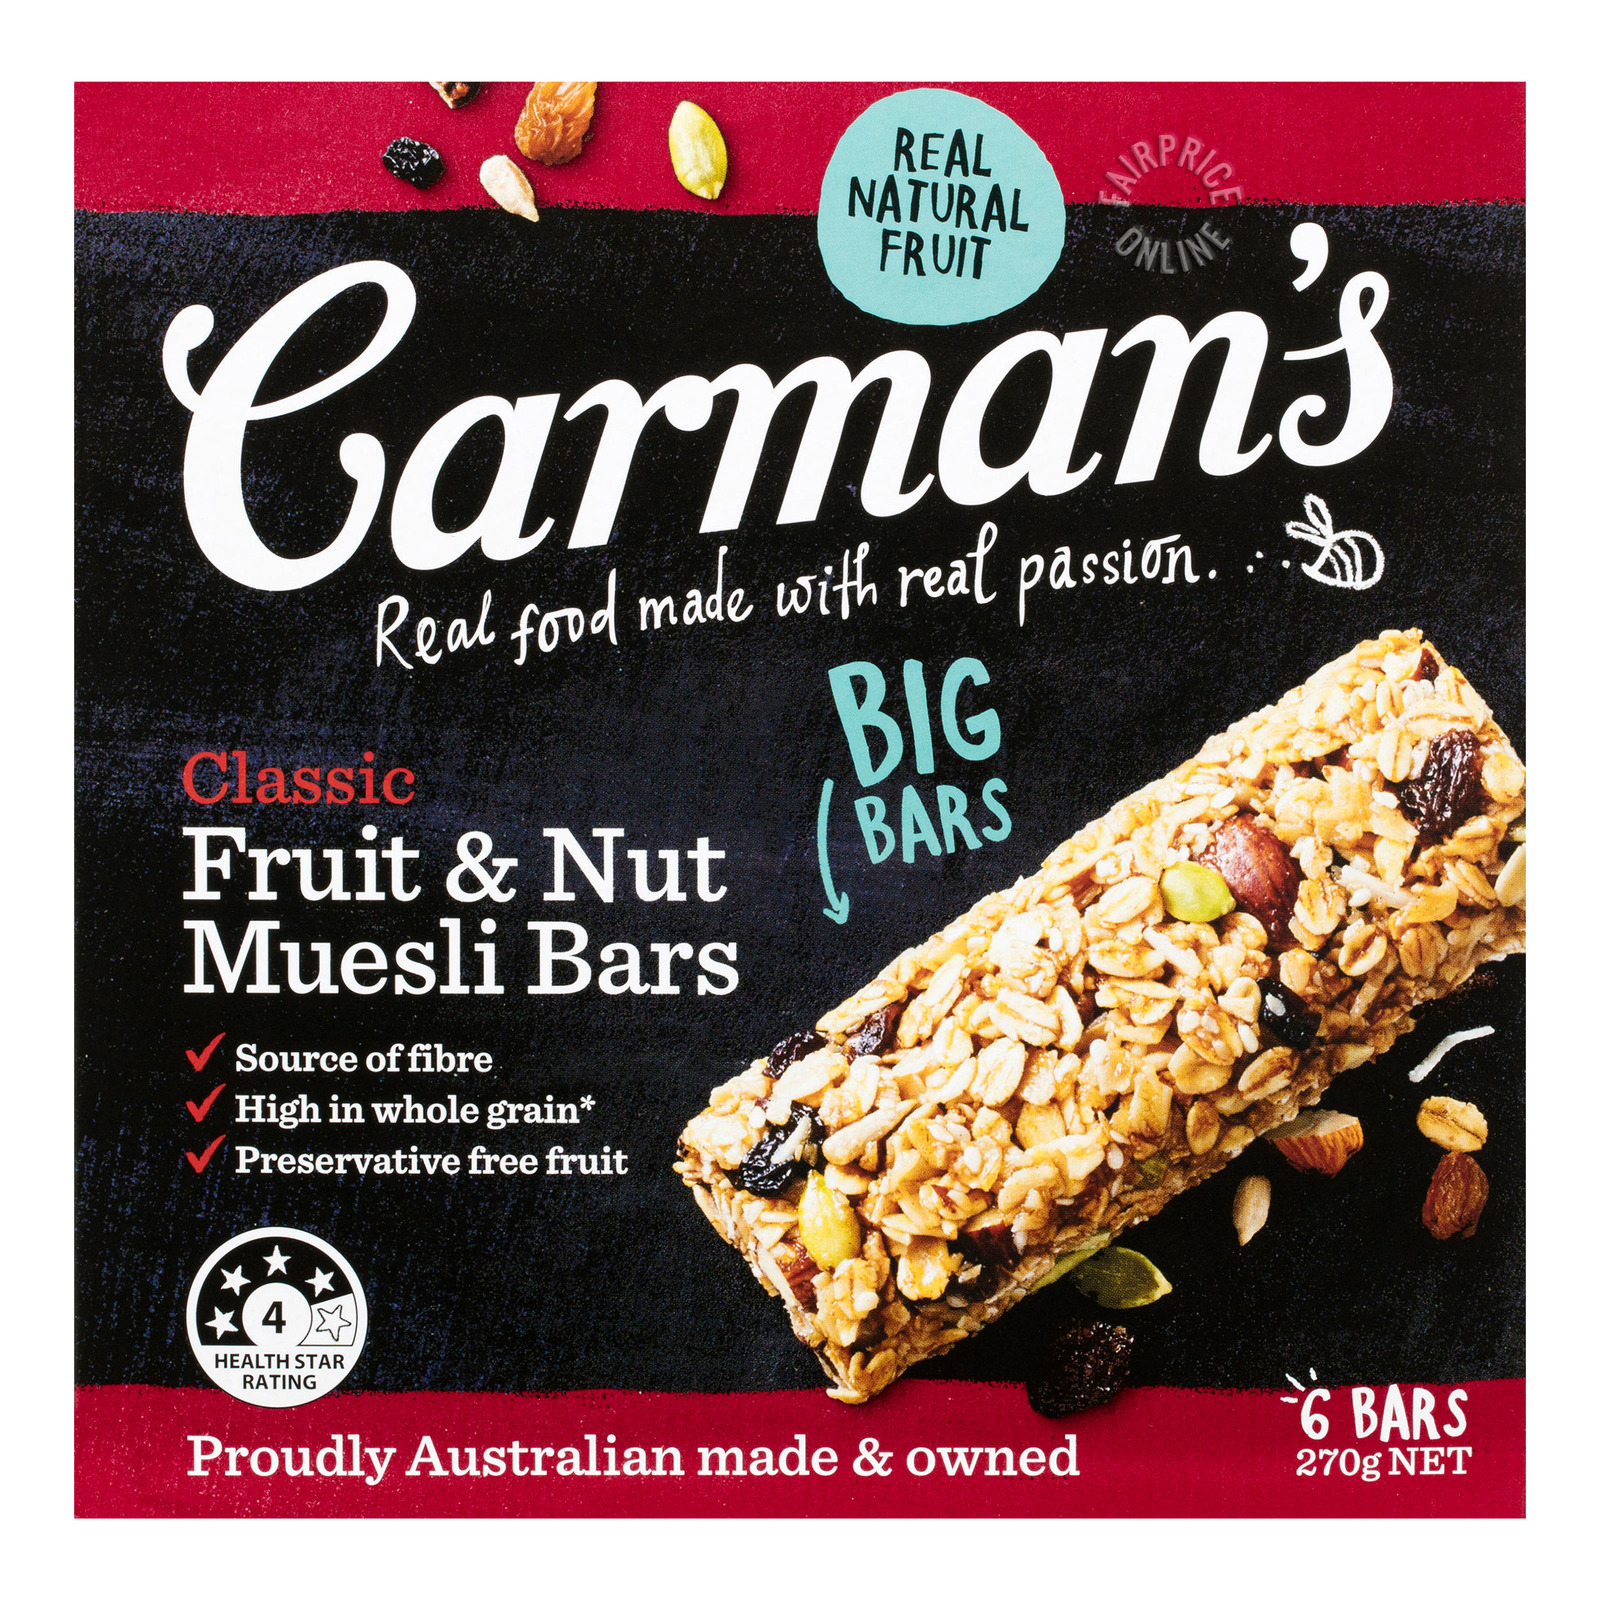 Carman's Muesli Bars - Classic (Fruit & Nut)